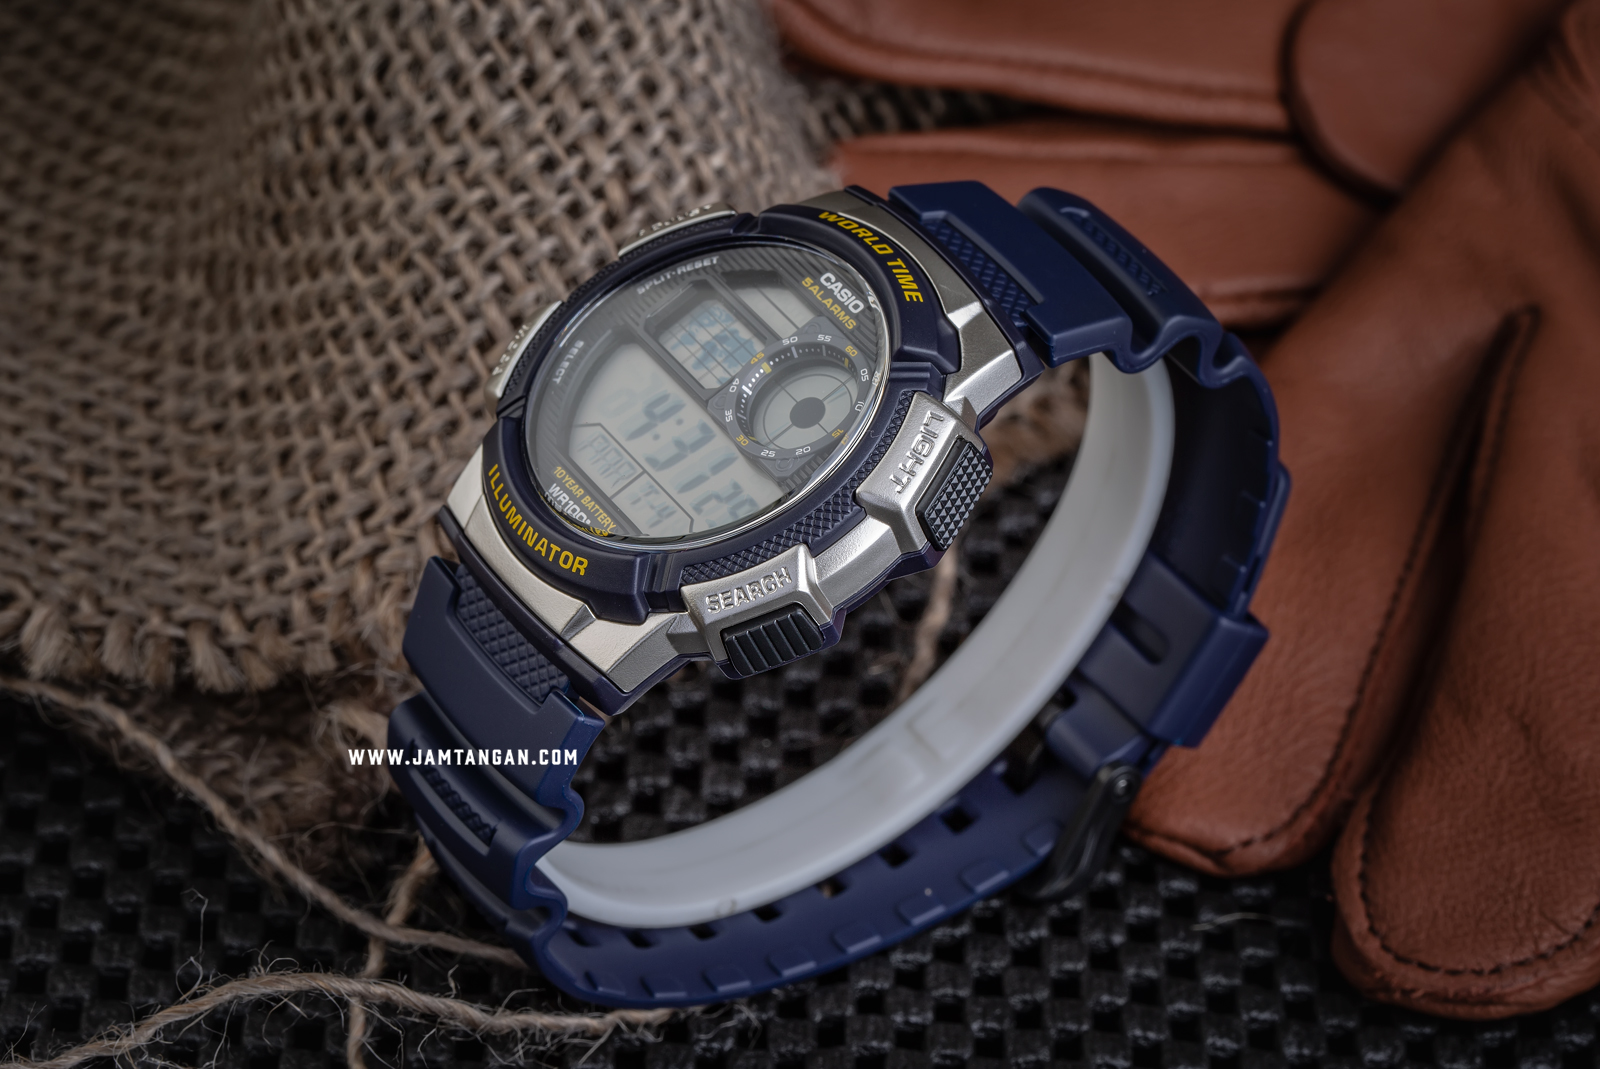 Casio AE-1000W-2AVDF - 10 Year Battery - Water Resistance 100M Blue Resin Band Machtwatch